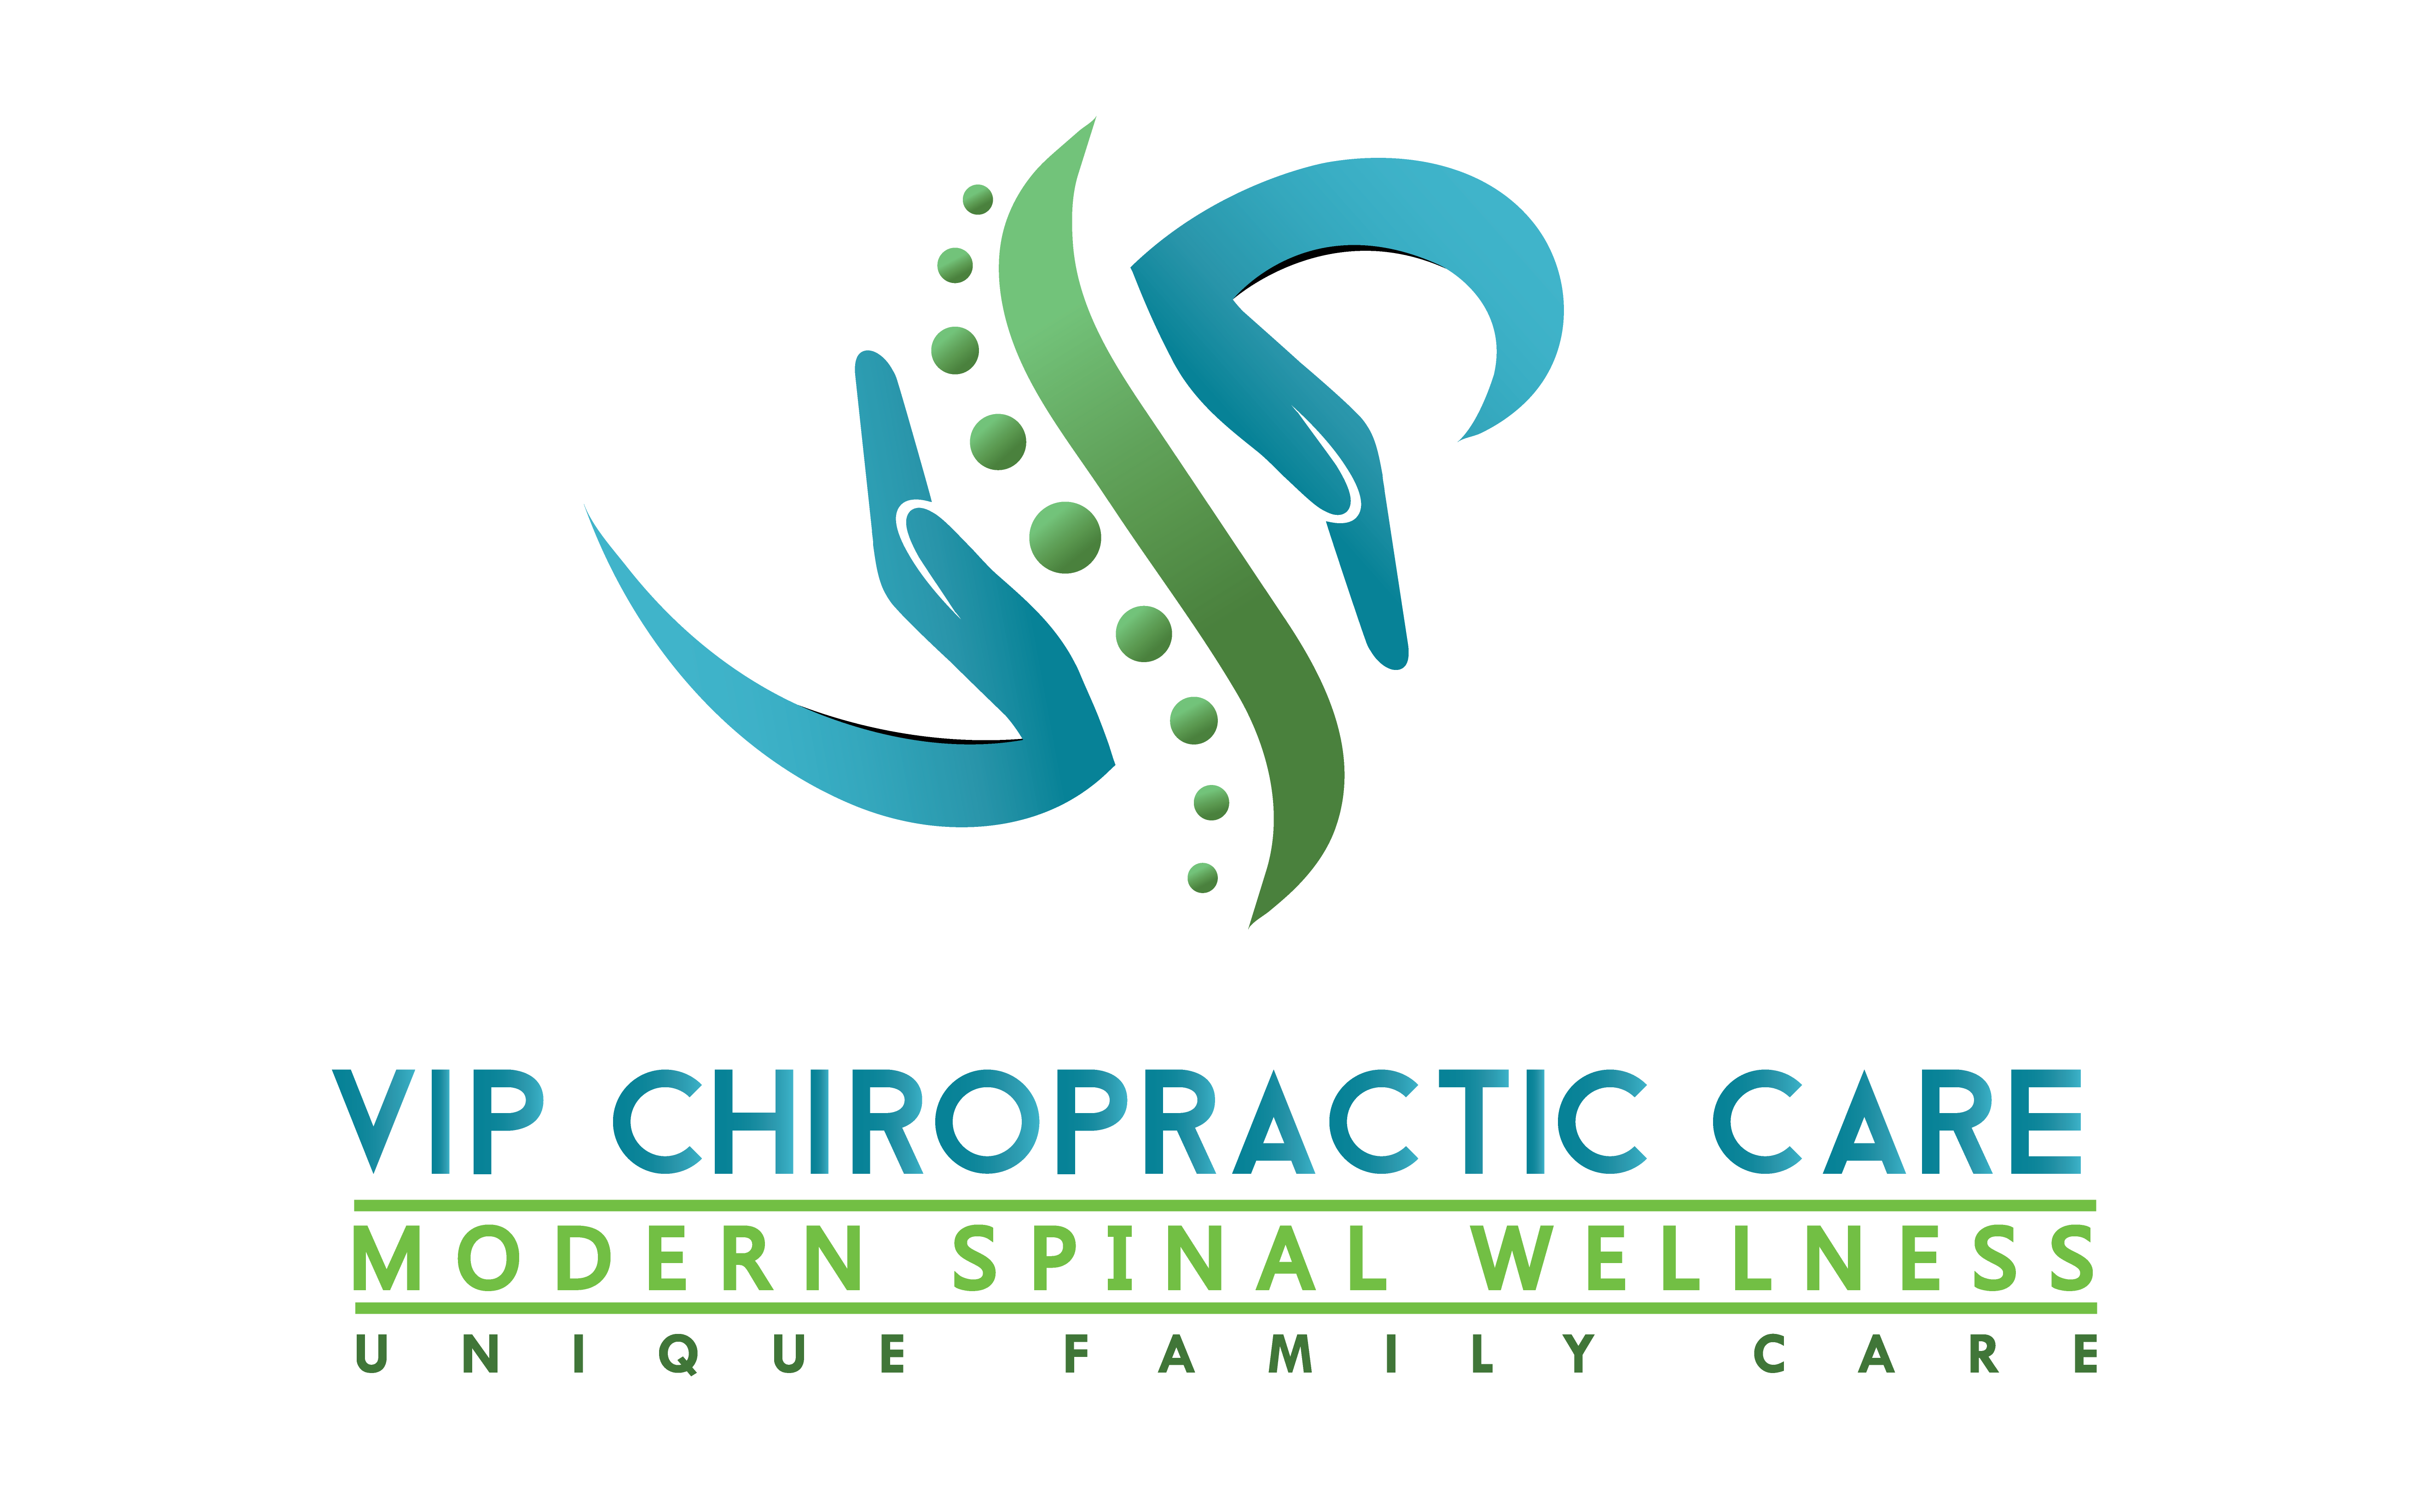 VIP Chiropractic Care - Modern Spinal Wellness - Unique Chiropractic Care